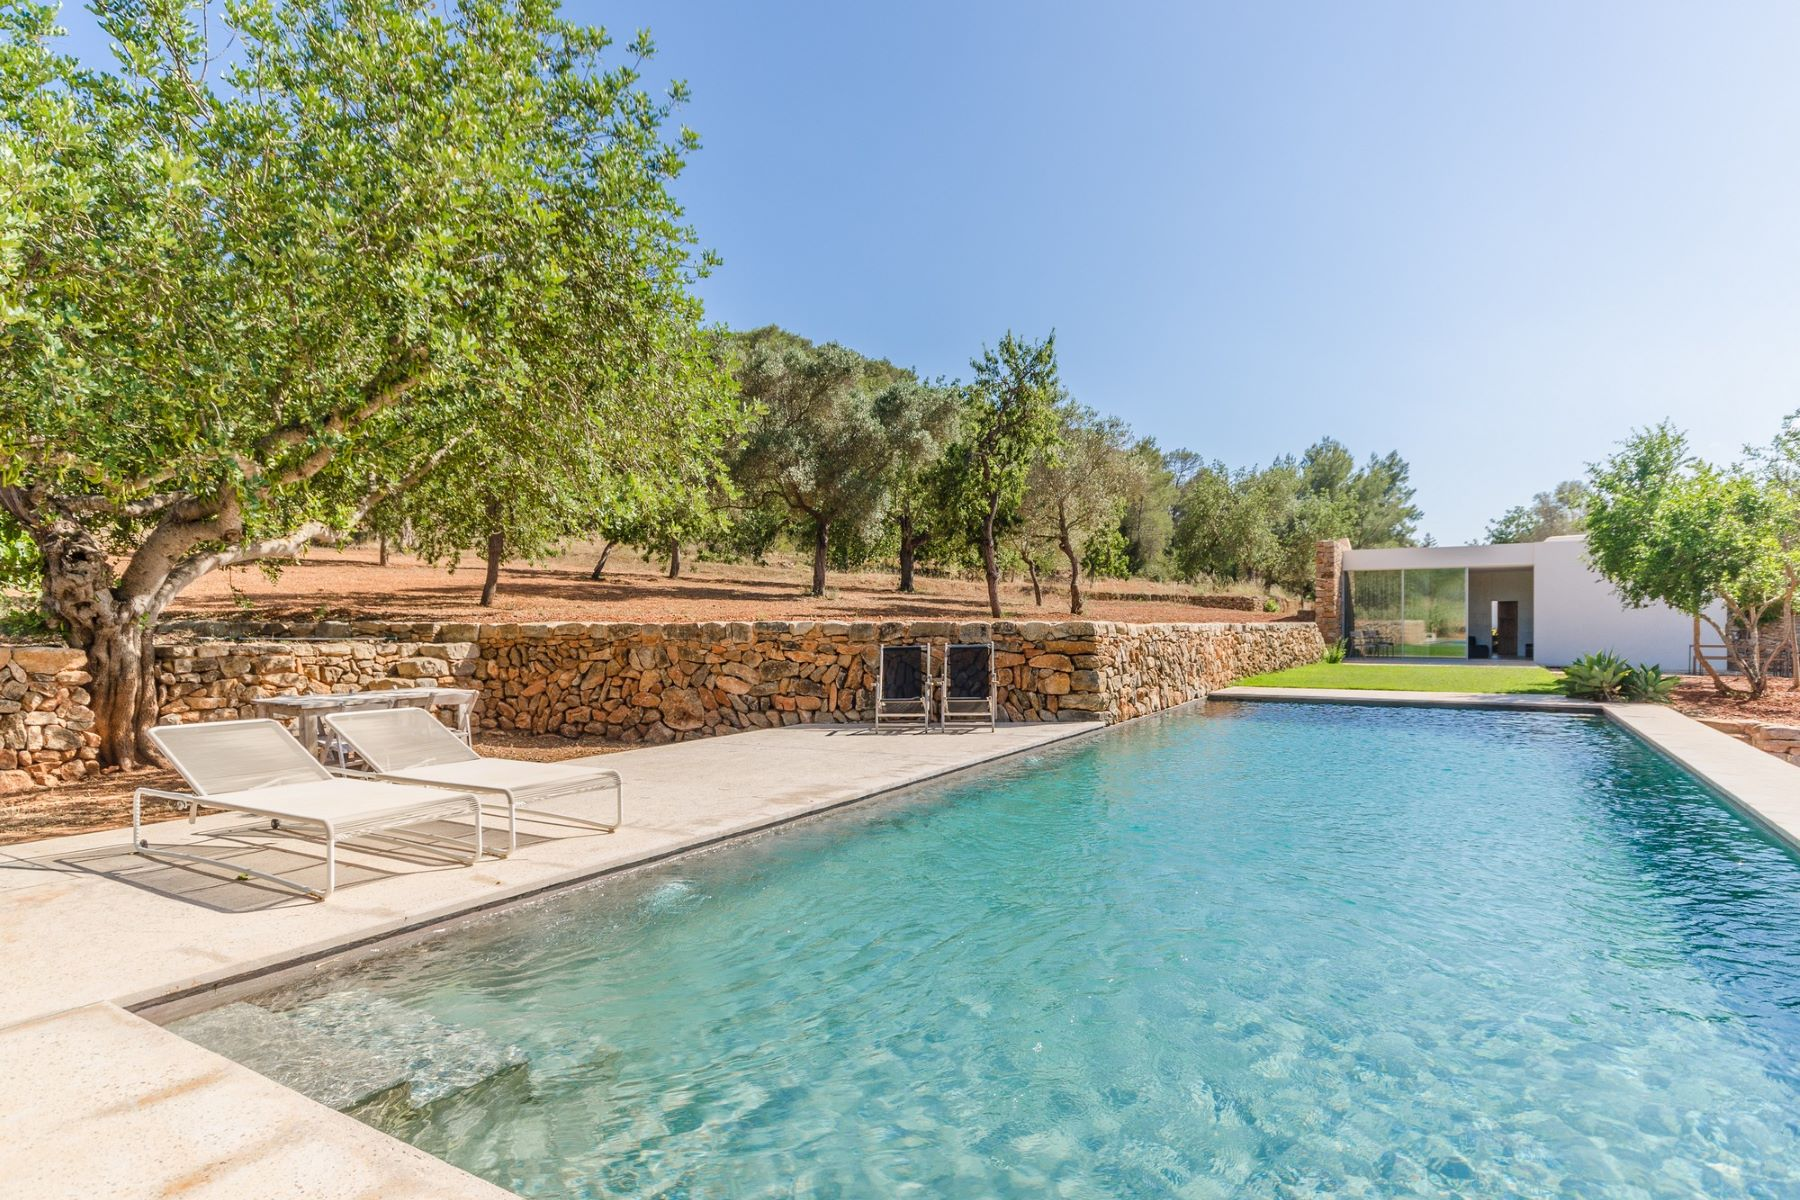 Single Family Home for Sale at Fusion Minimalist Finca In Country Side In Ibiza Ibiza, Ibiza, 07800 Spain